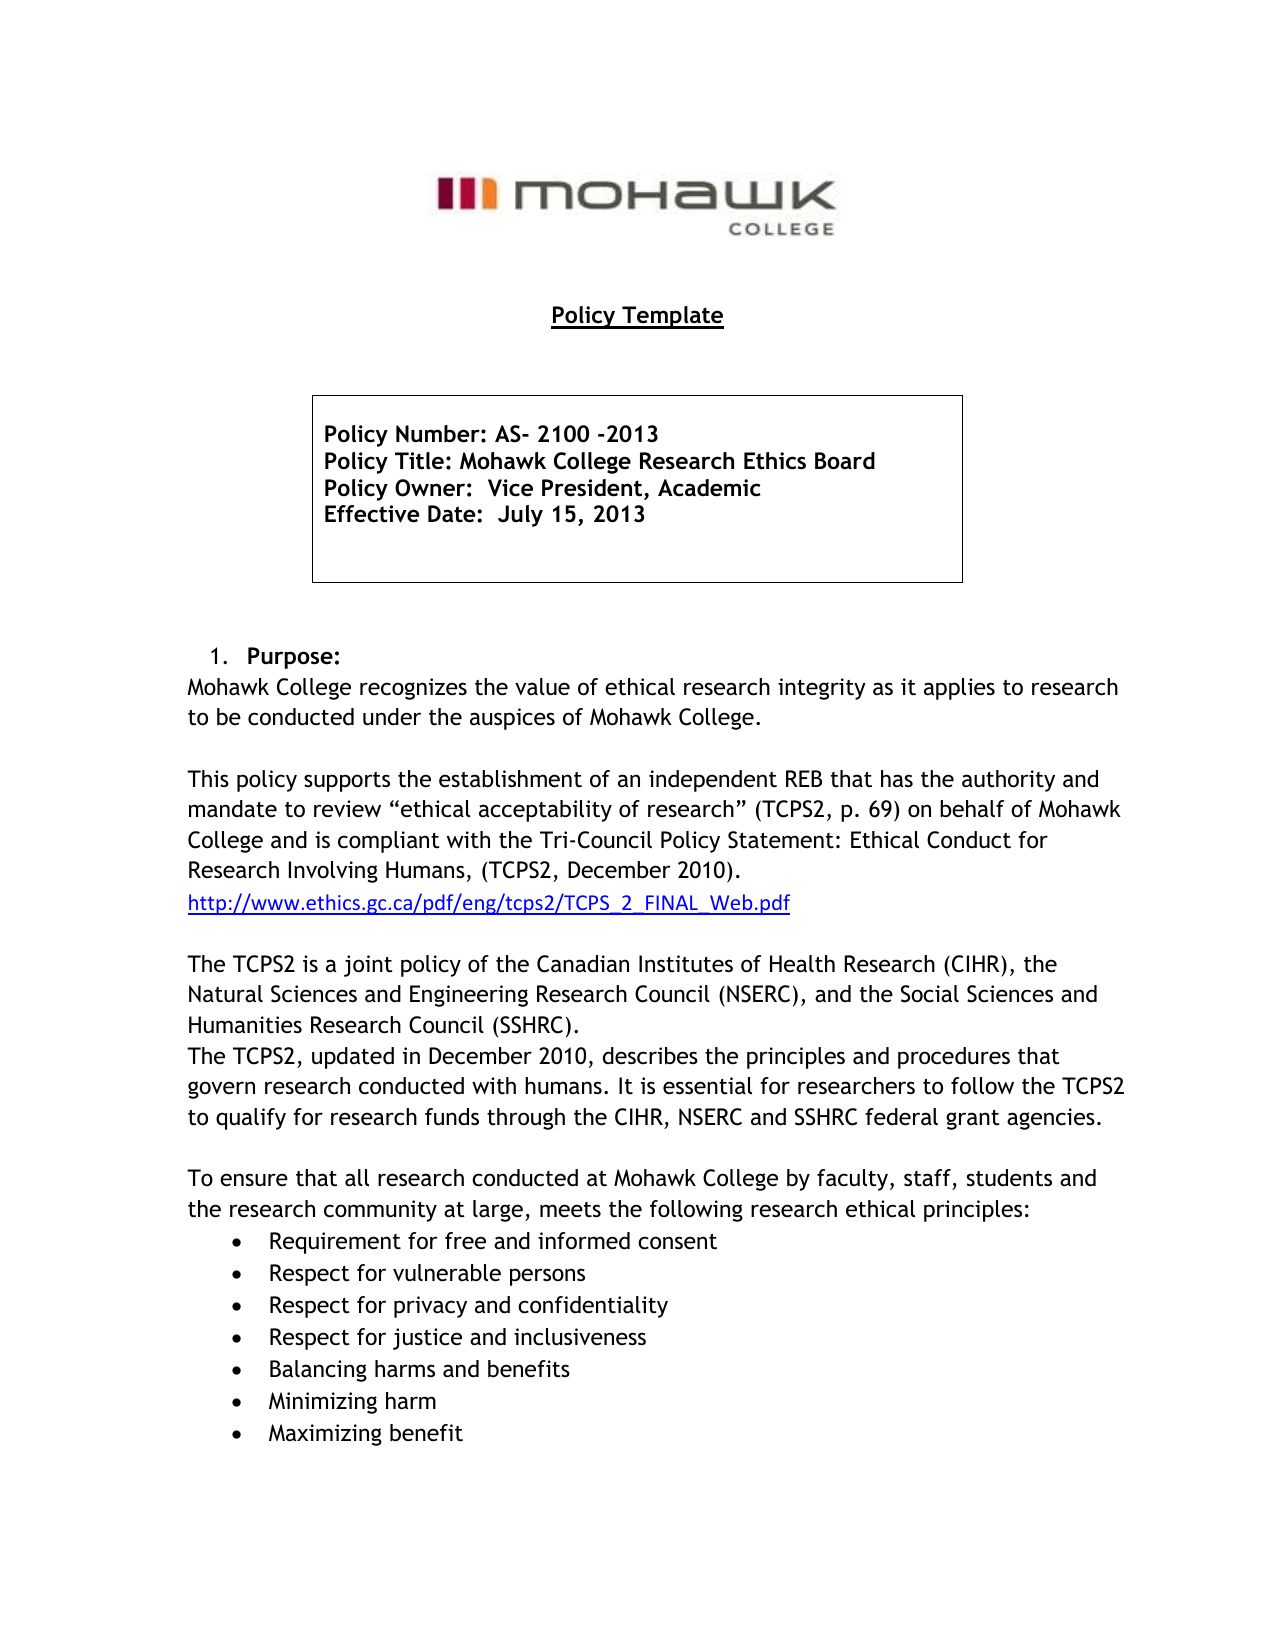 Policy Template - Mohawk College Research Ethics Board